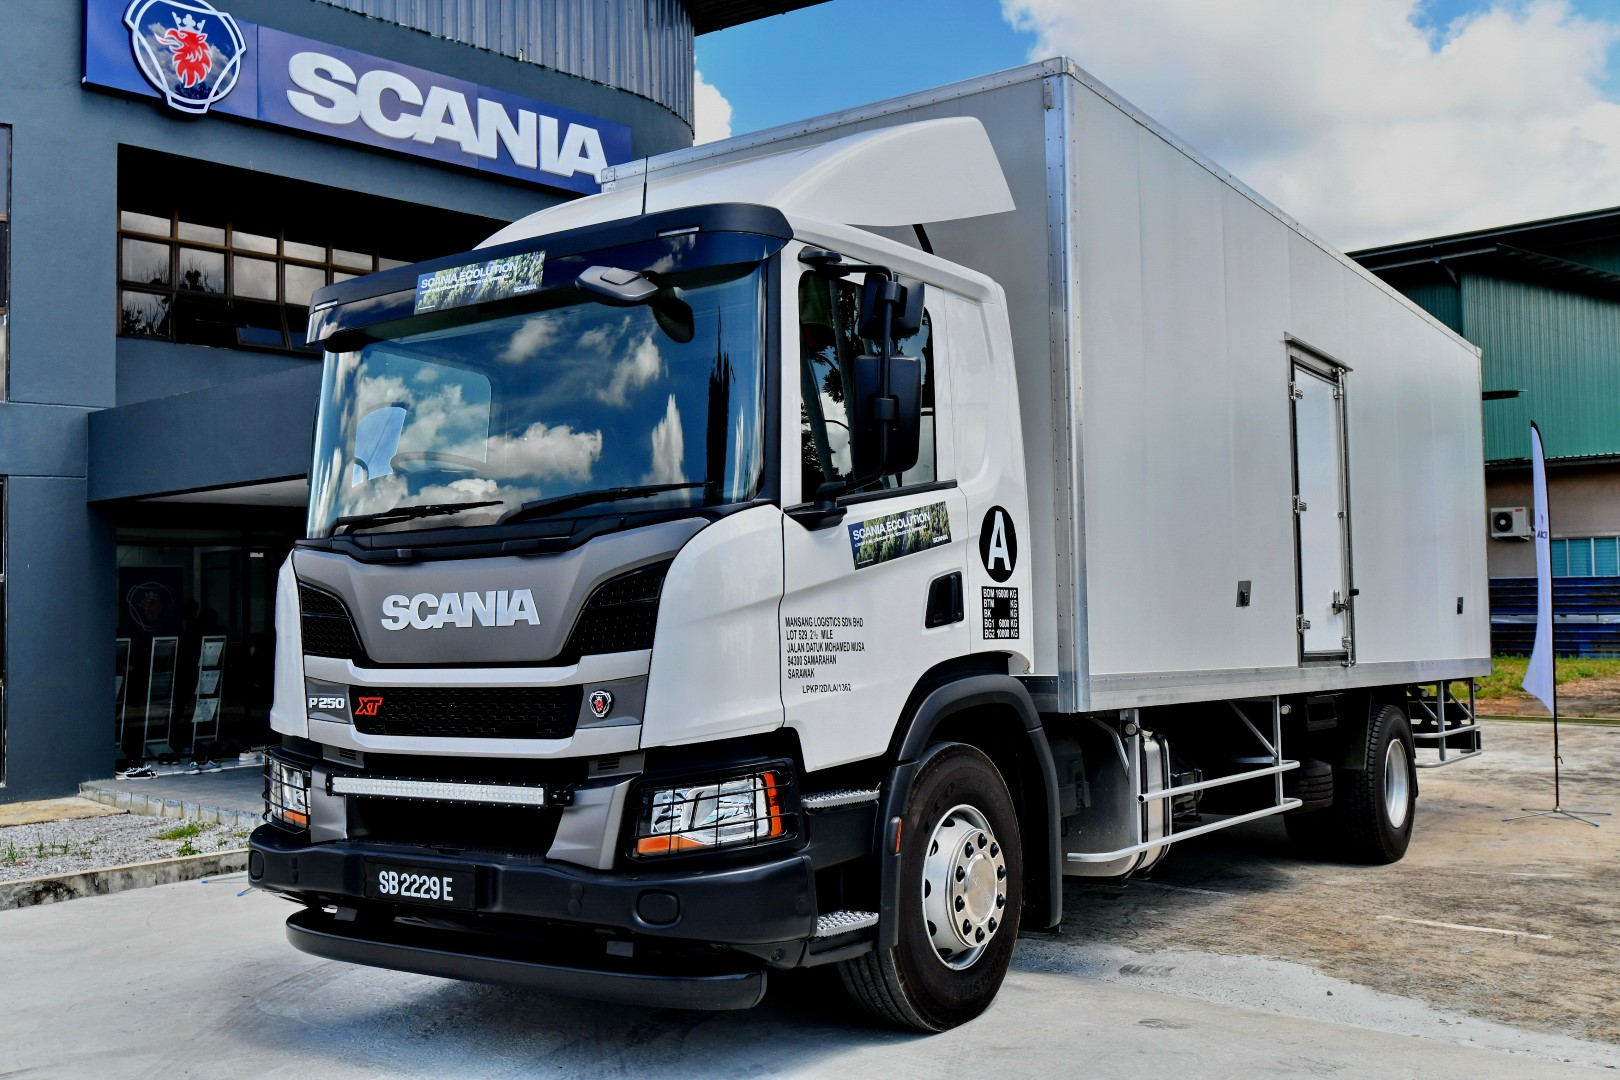 Scania XT refrigerated truck